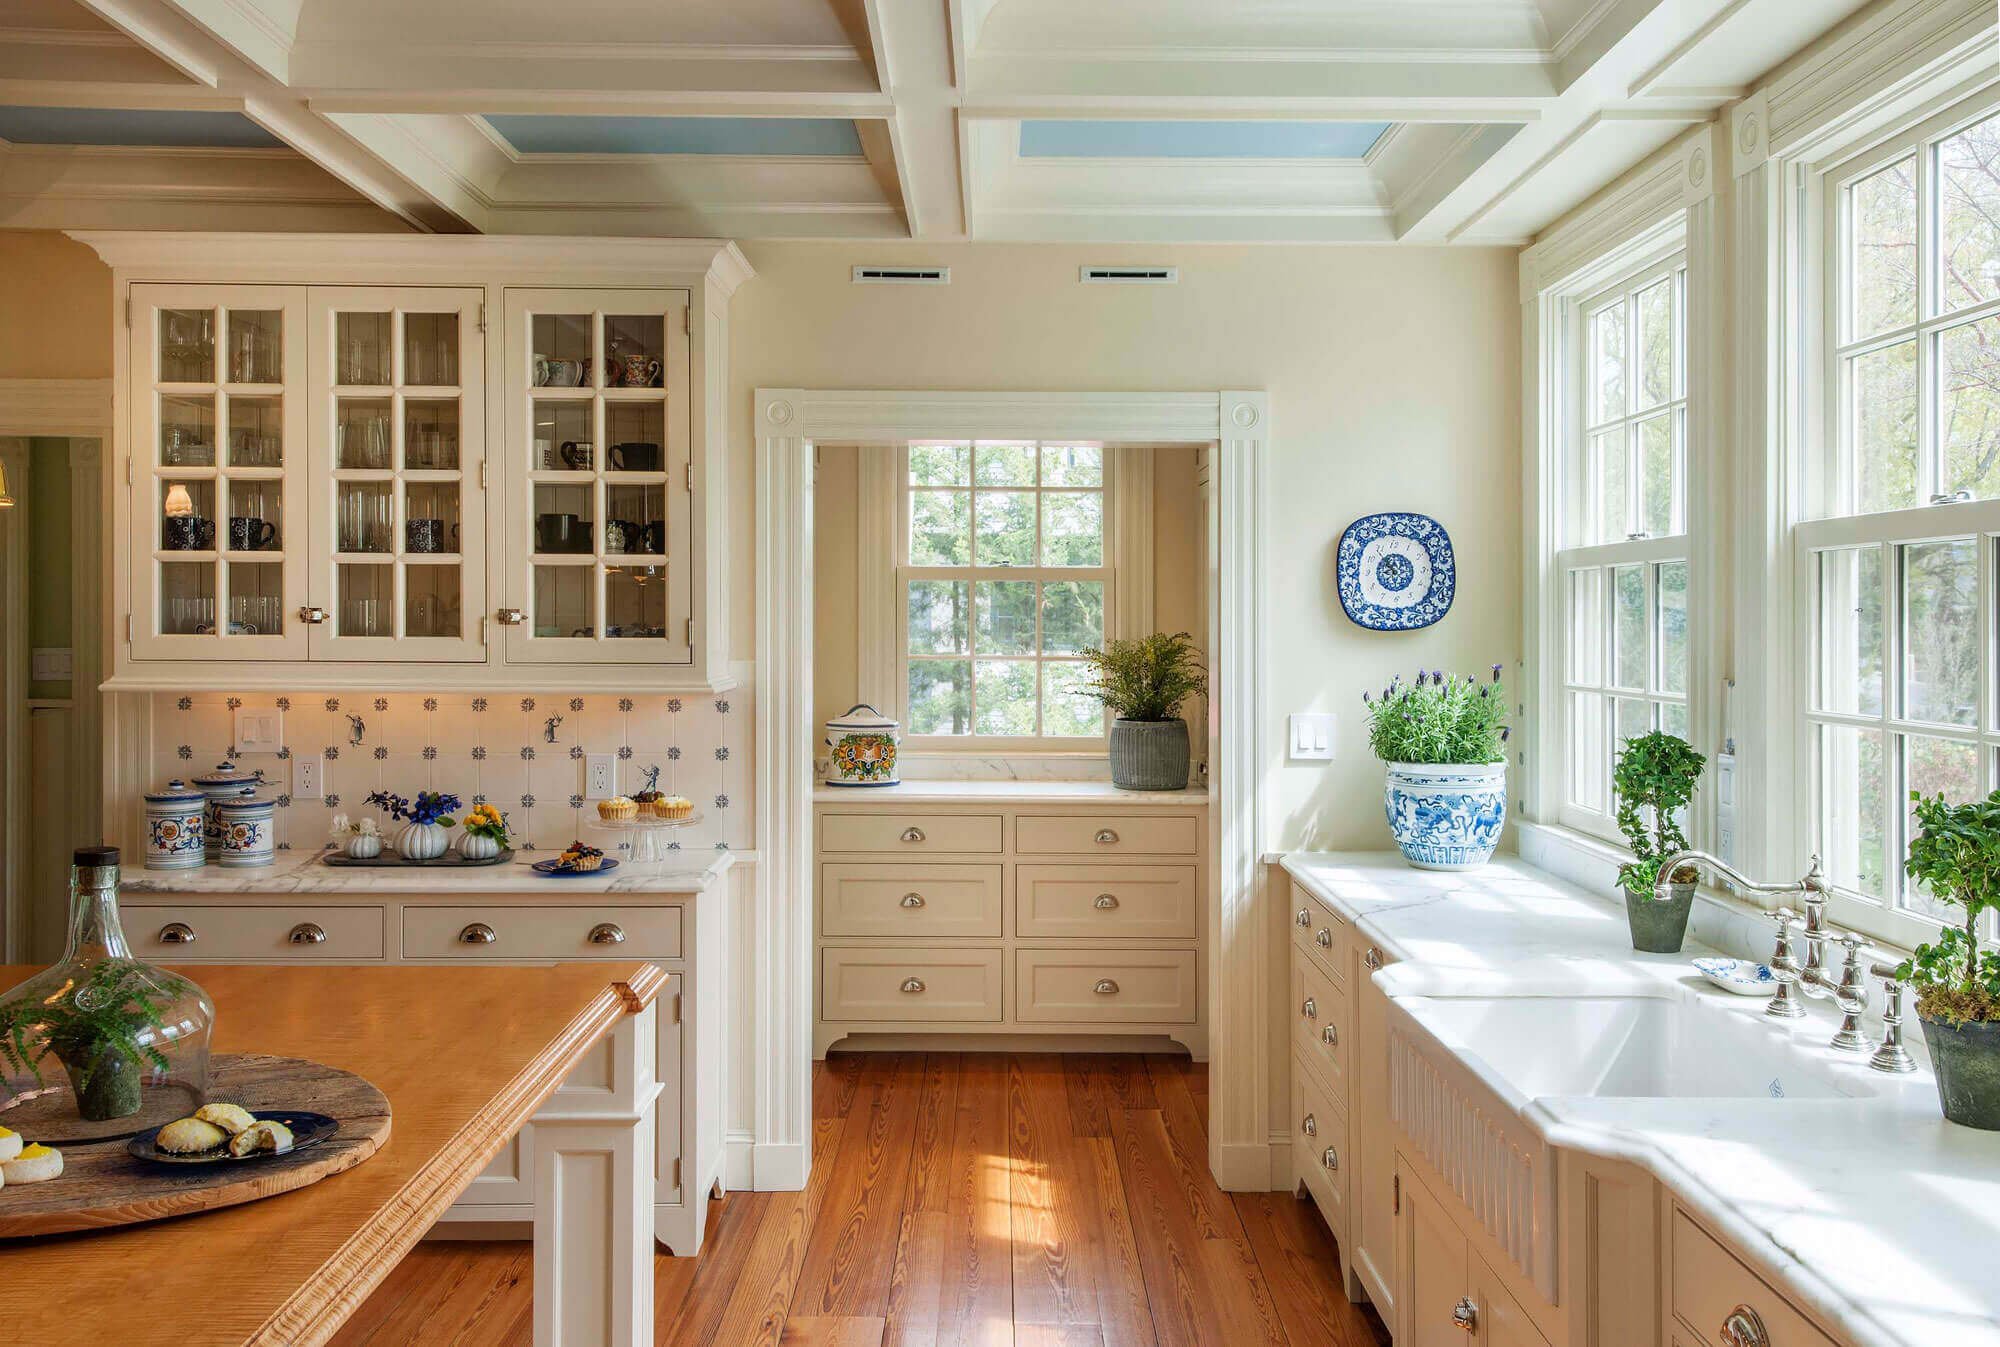 Greek Revival Kitchen - Architecture